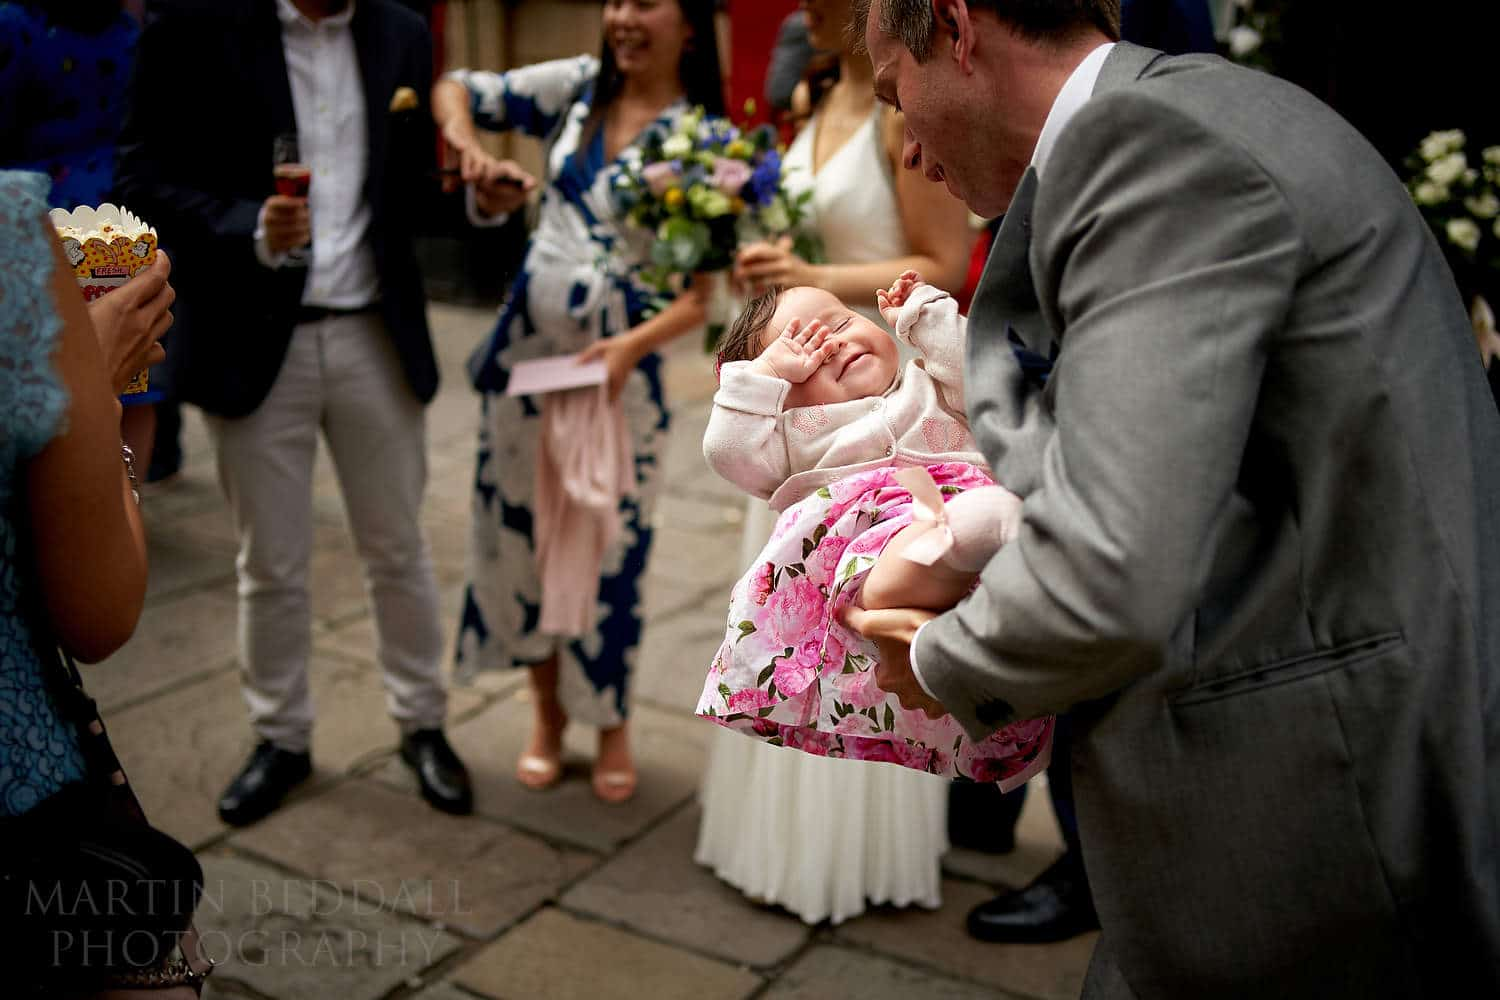 Young wedding guest rocked